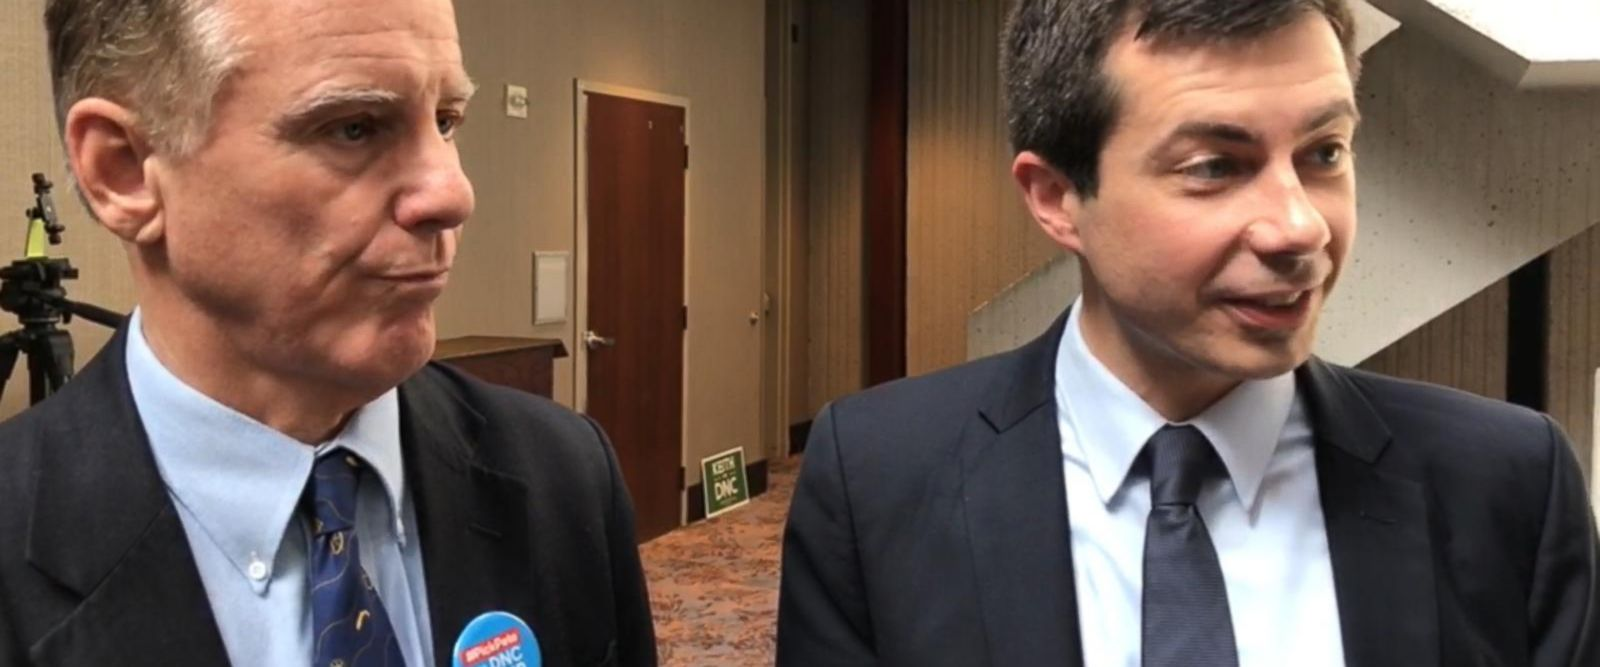 VIDEO: Race for DNC chair narrows